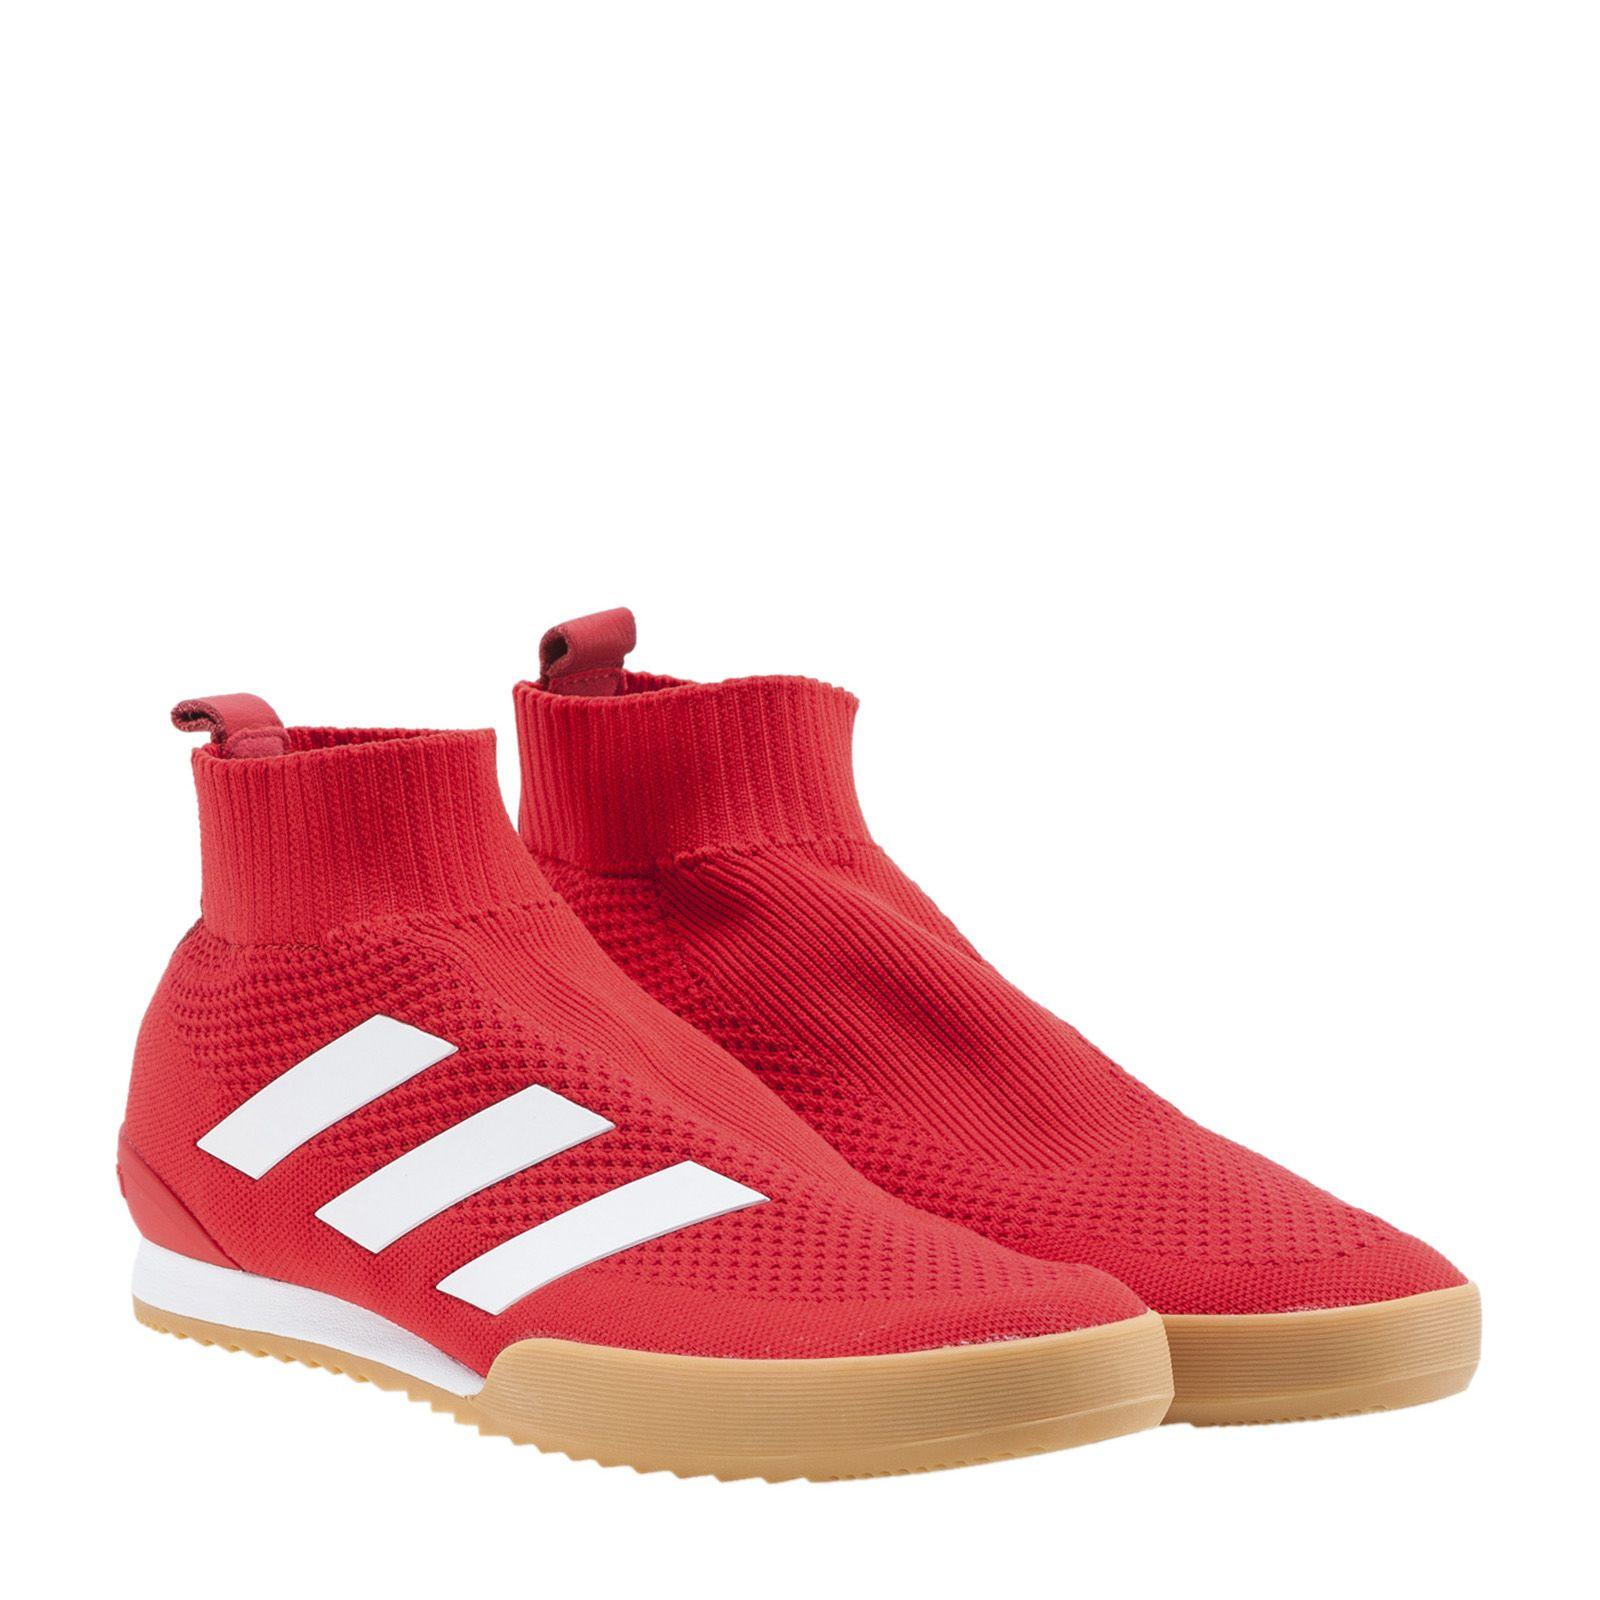 new product ba500 b20a9 Adidas Ace 16+ Super Shoes in Red